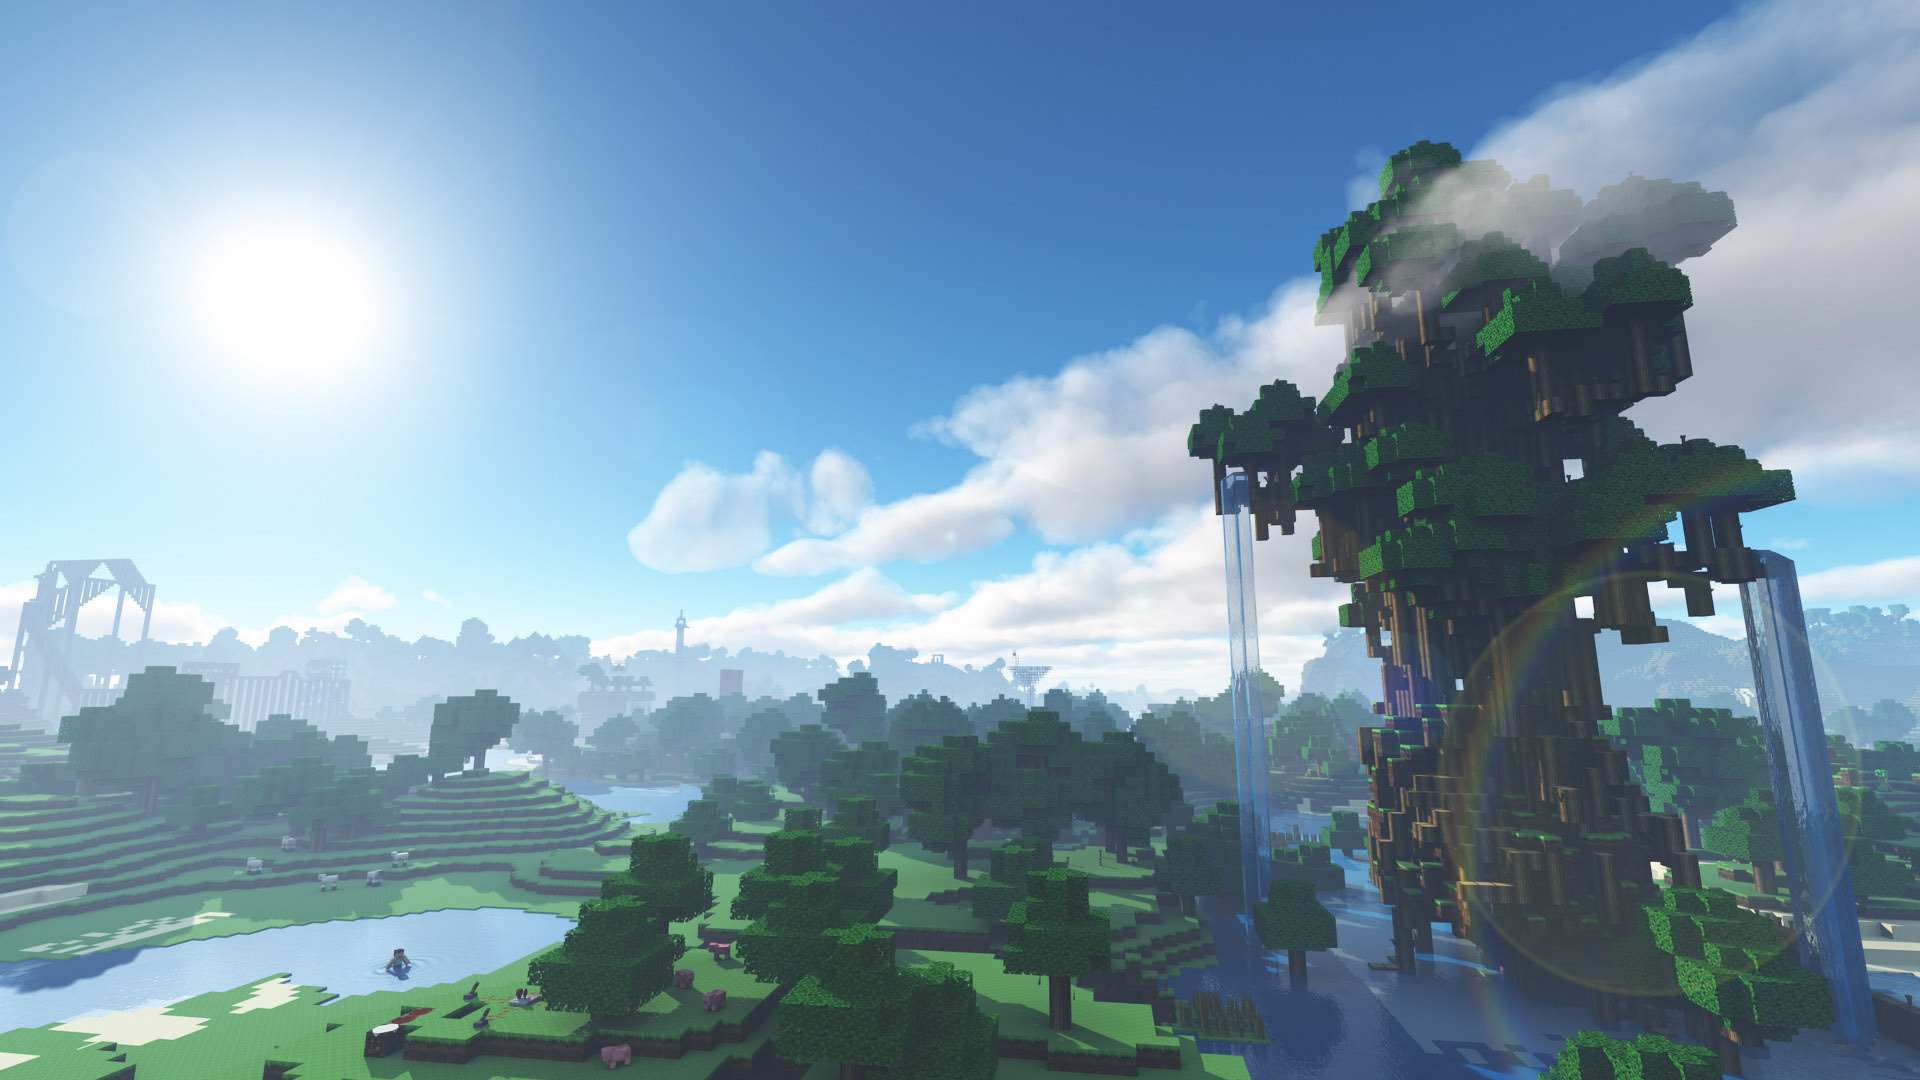 Simple Wallpaper Minecraft Plain - minecraft-hd-wallpaper-26  Perfect Image Reference_123128.jpg